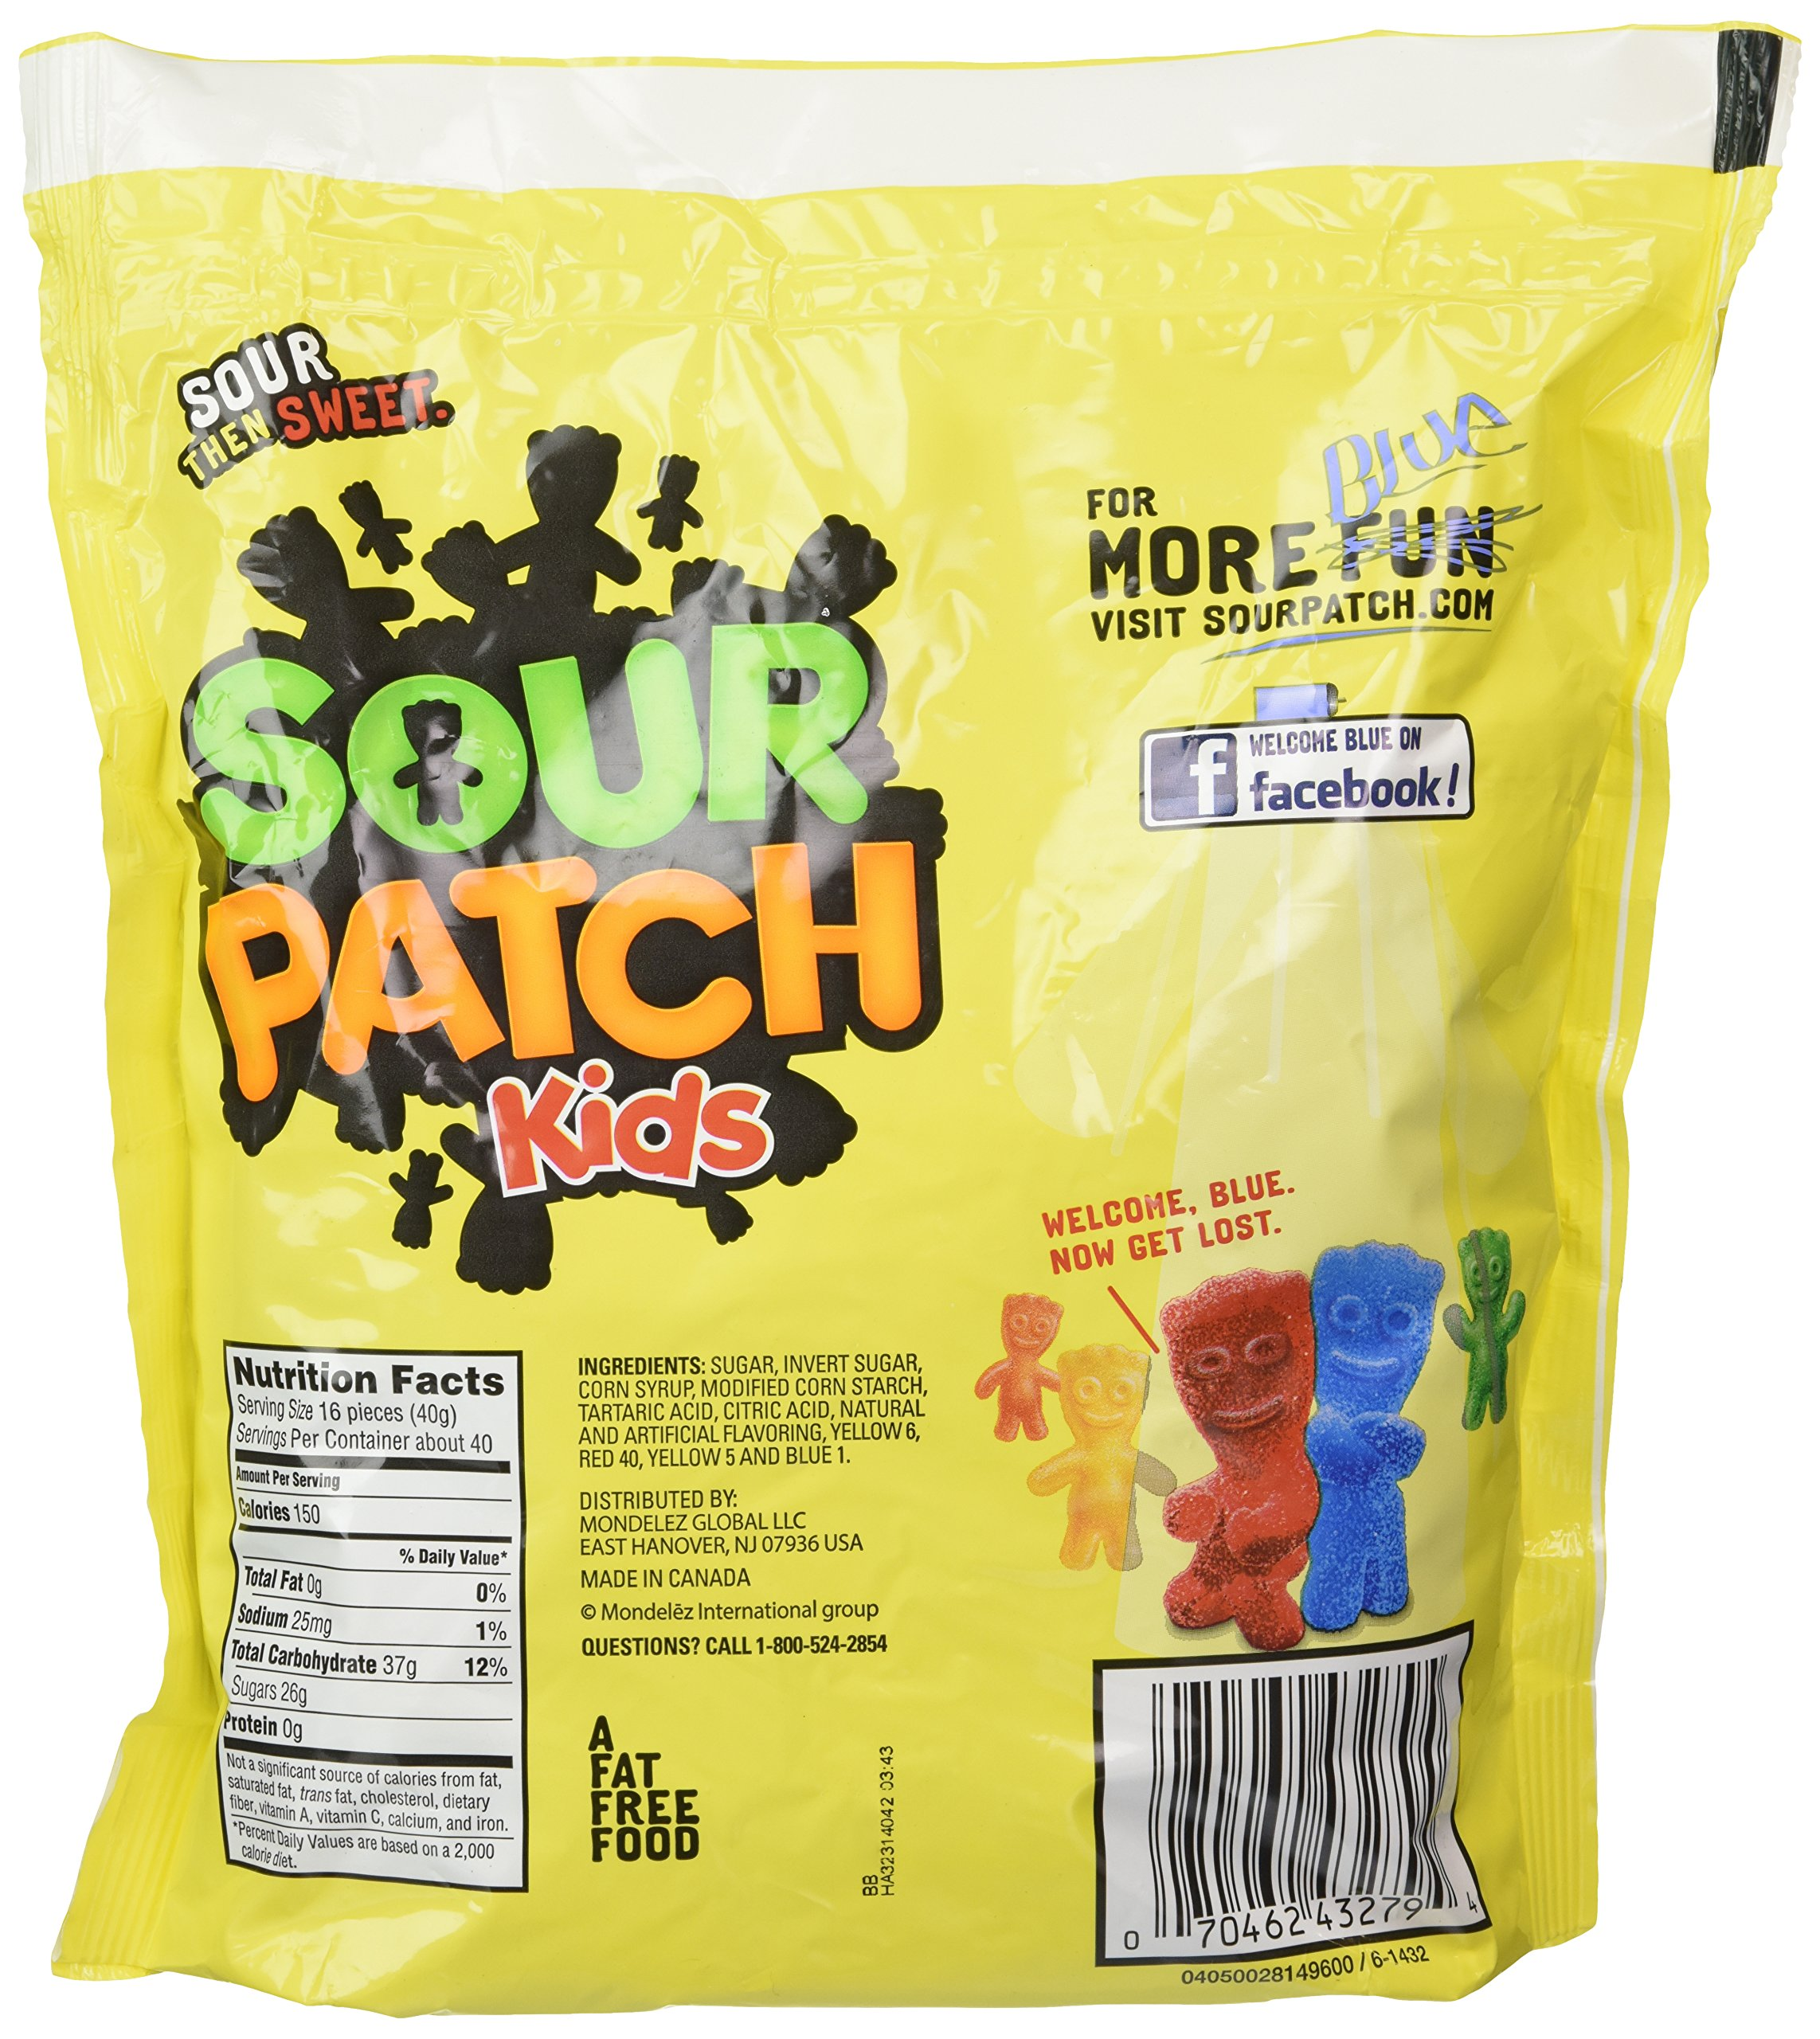 Sour Patch Kids Sweet and Sour Gummy Candy (Original, 3.5 Pound Bag) by Sour Patch